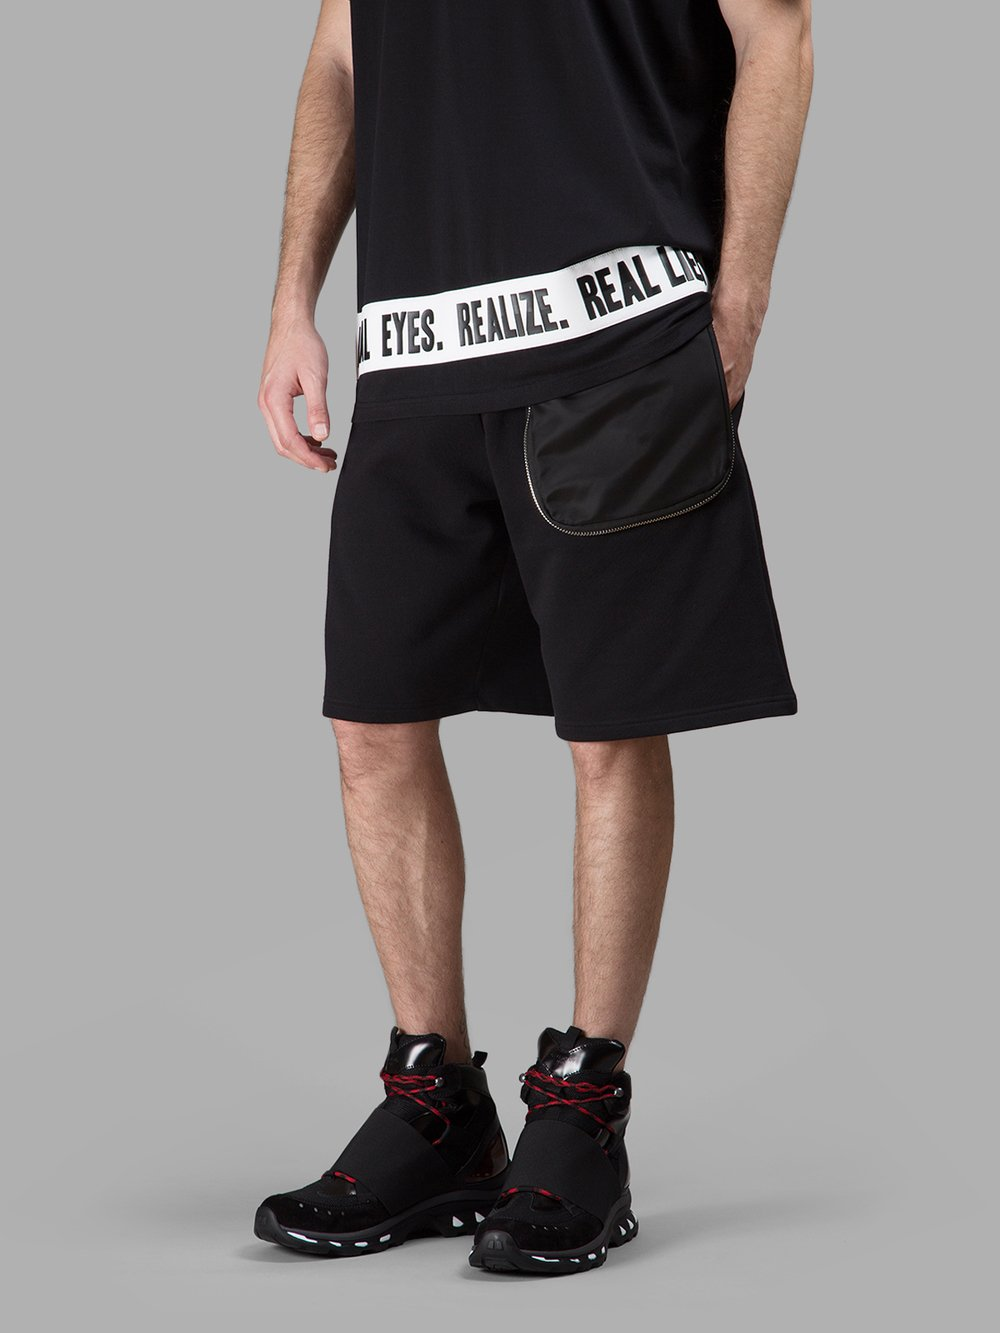 uk store discount shop buy good Givenchy Shorts 17J7215653 001